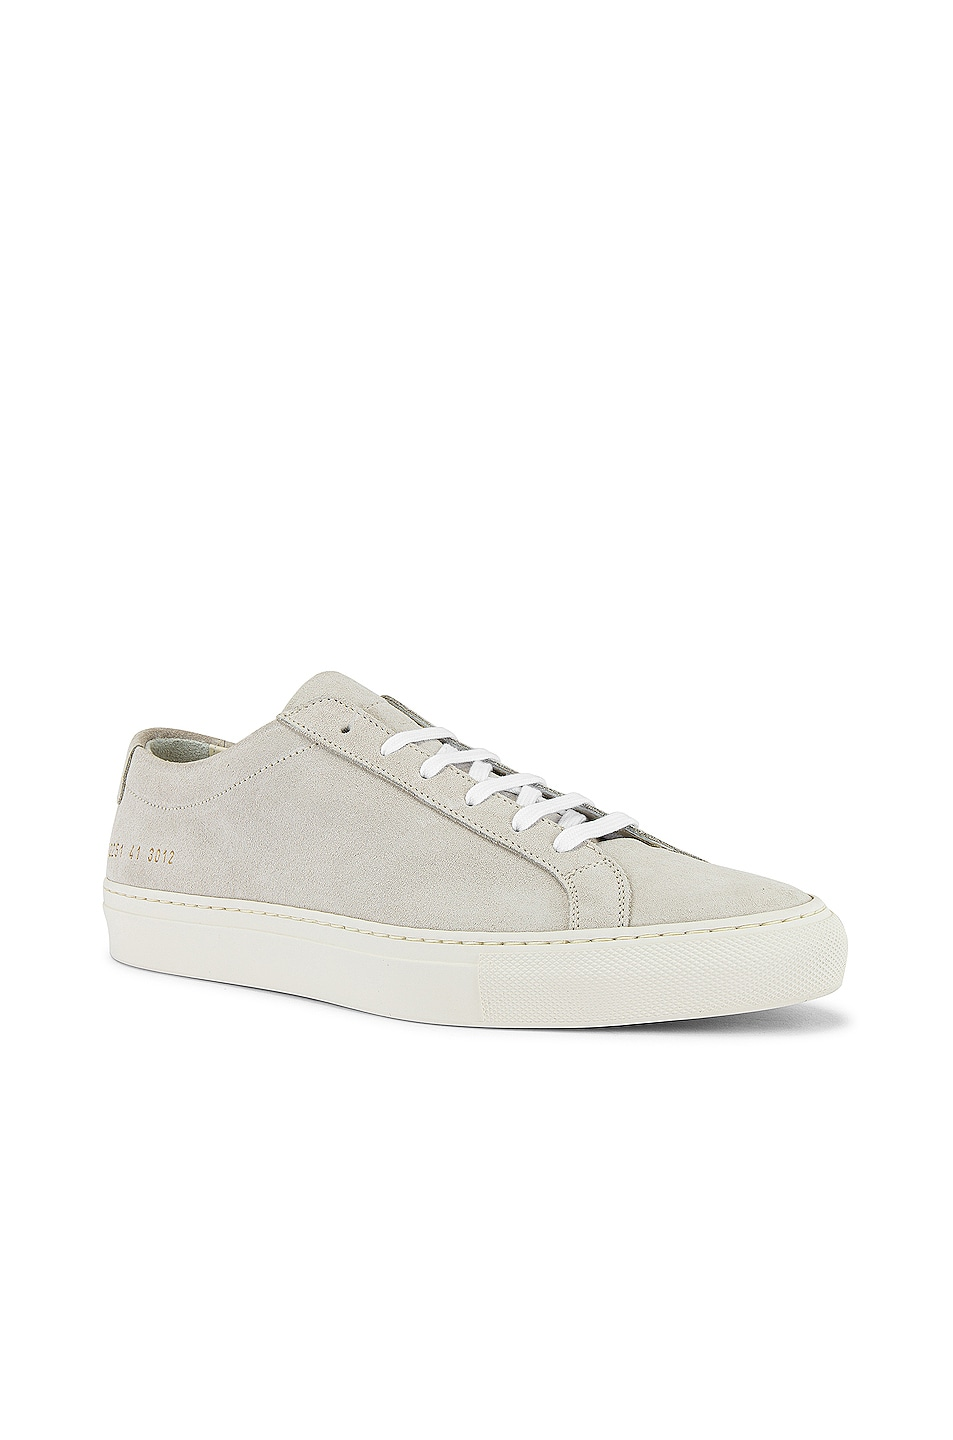 Image 1 of Common Projects Original Achilles Low Suede Sneaker in Off White